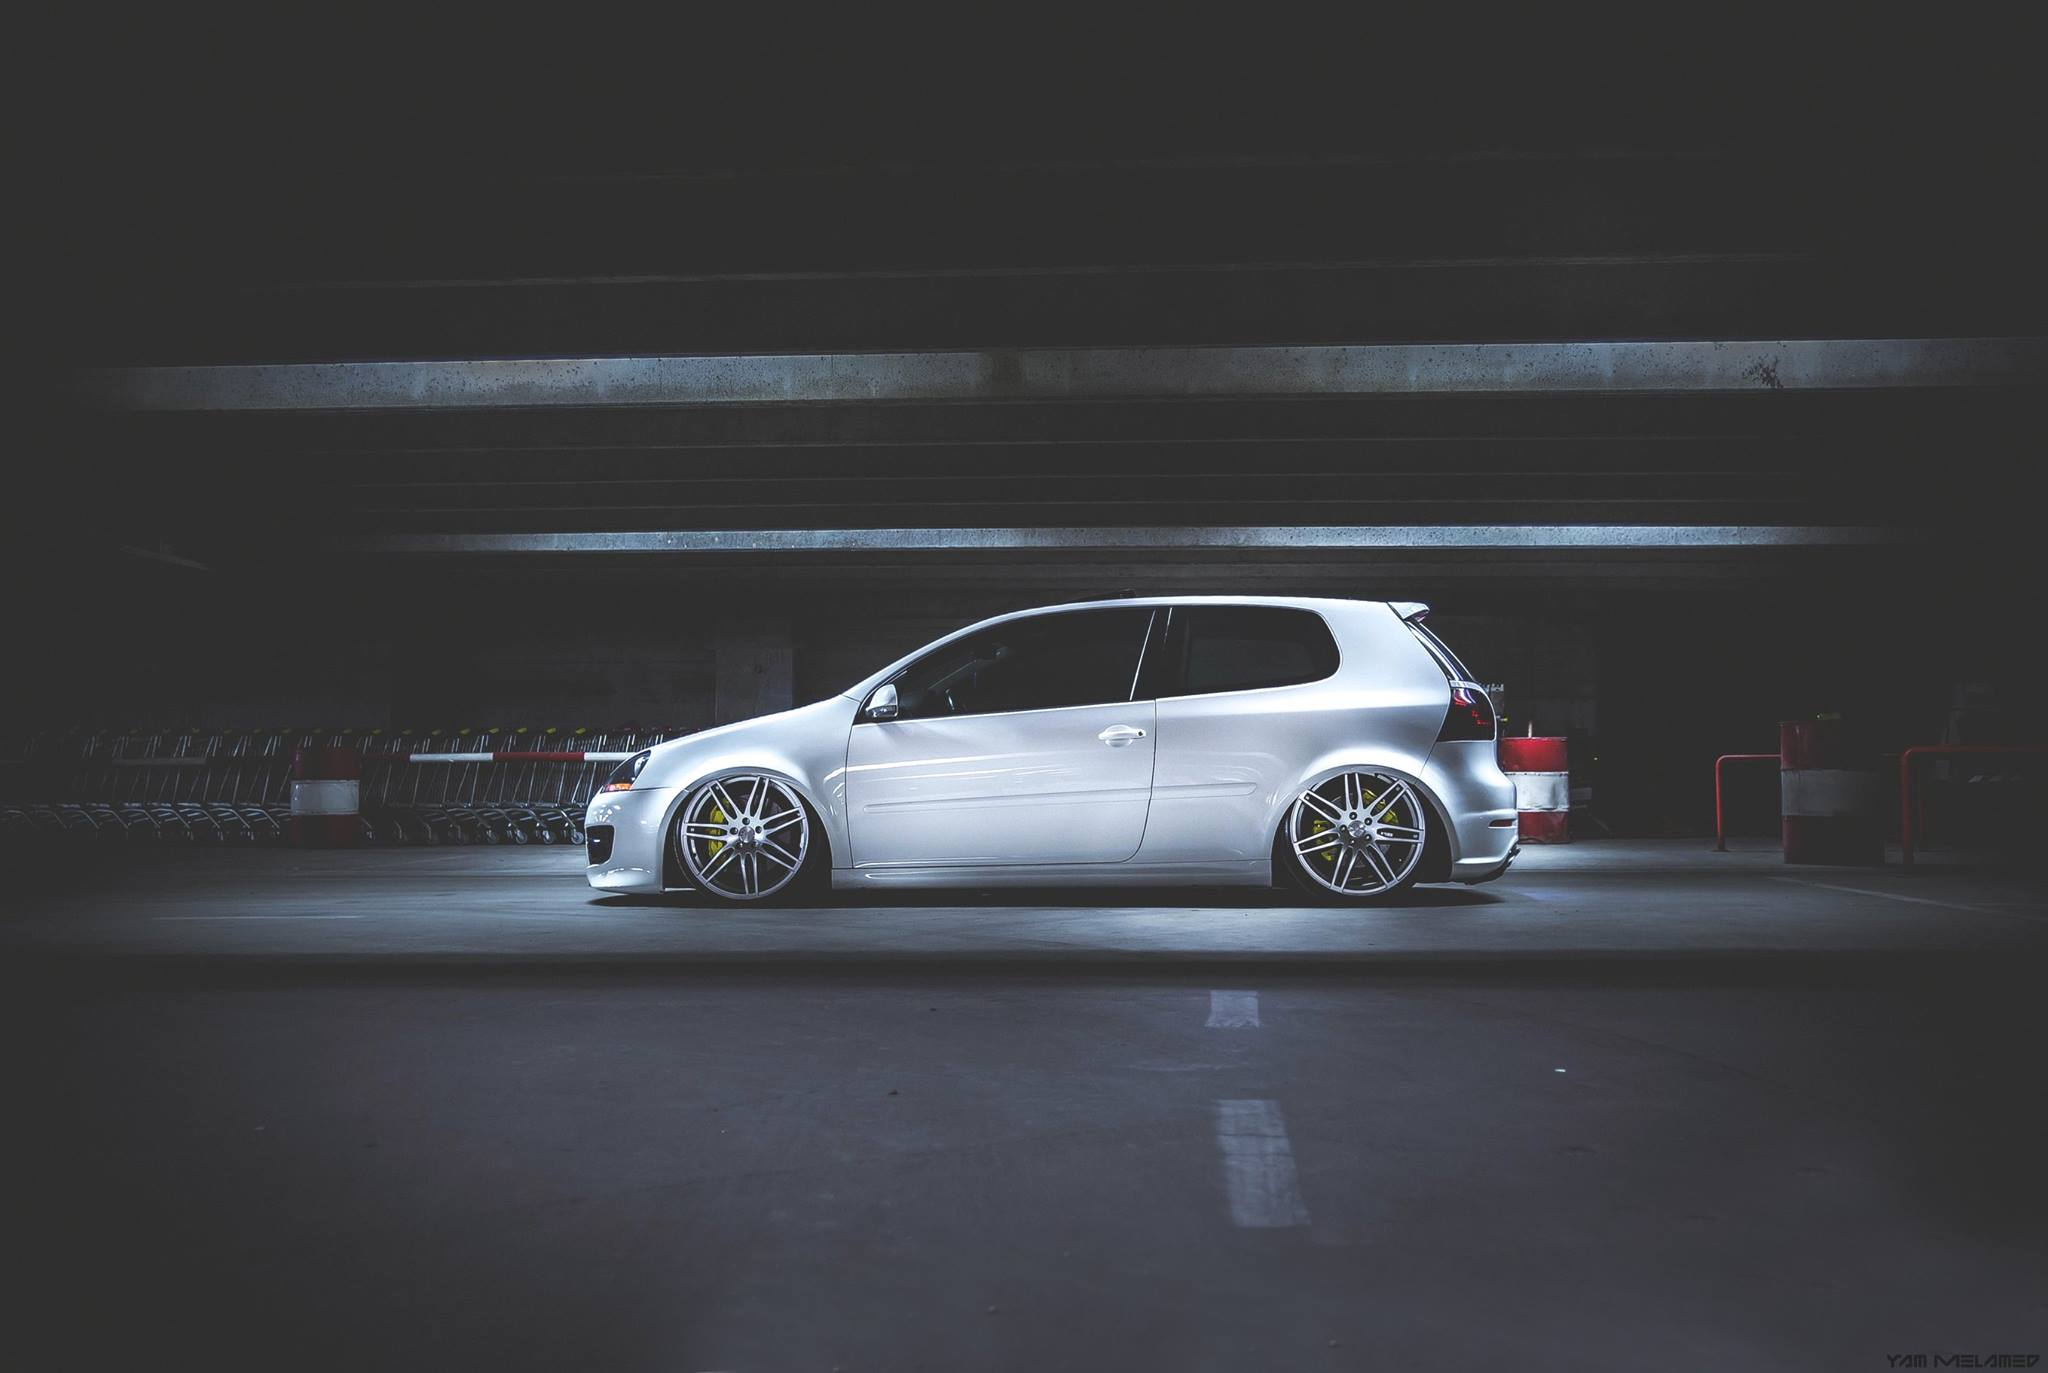 VW Golf Mk5, Stance, Formed